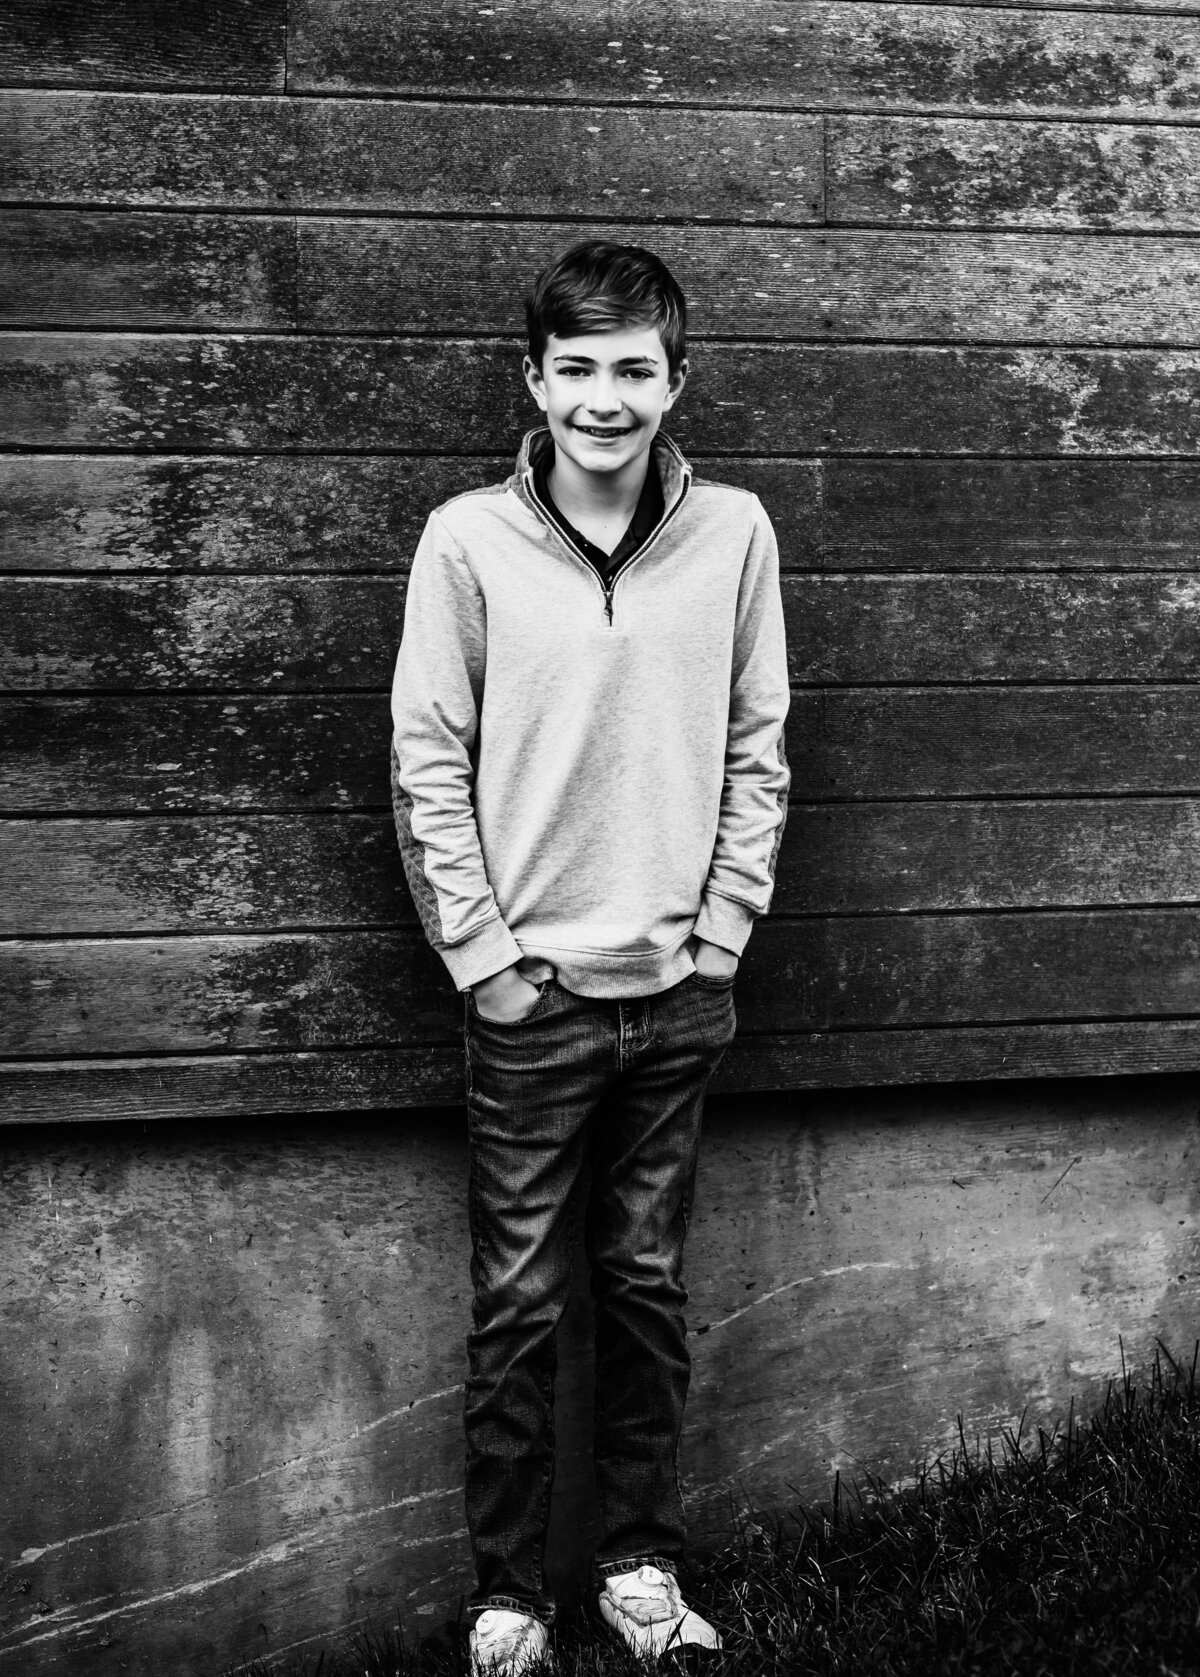 Black and white photo of boy against wall